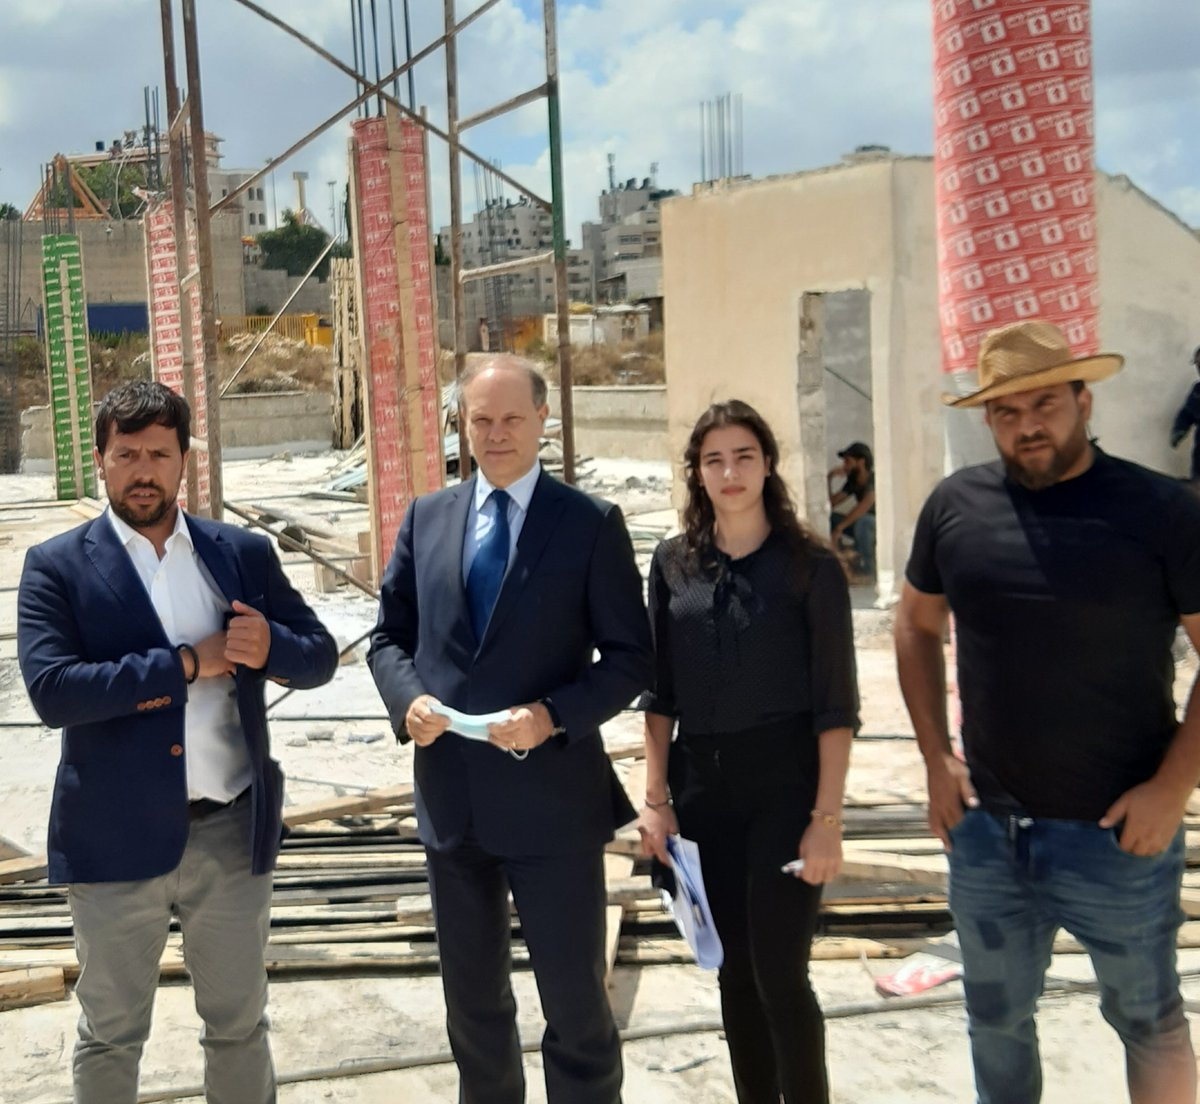 Works in quick progess ! Lycée français international de Ramallah. Ready to welcome the children in good conditions. Preparing the next school year @mlfmonde @francediplo @FranceJerusalem https://t.co/w854ZPxBg7